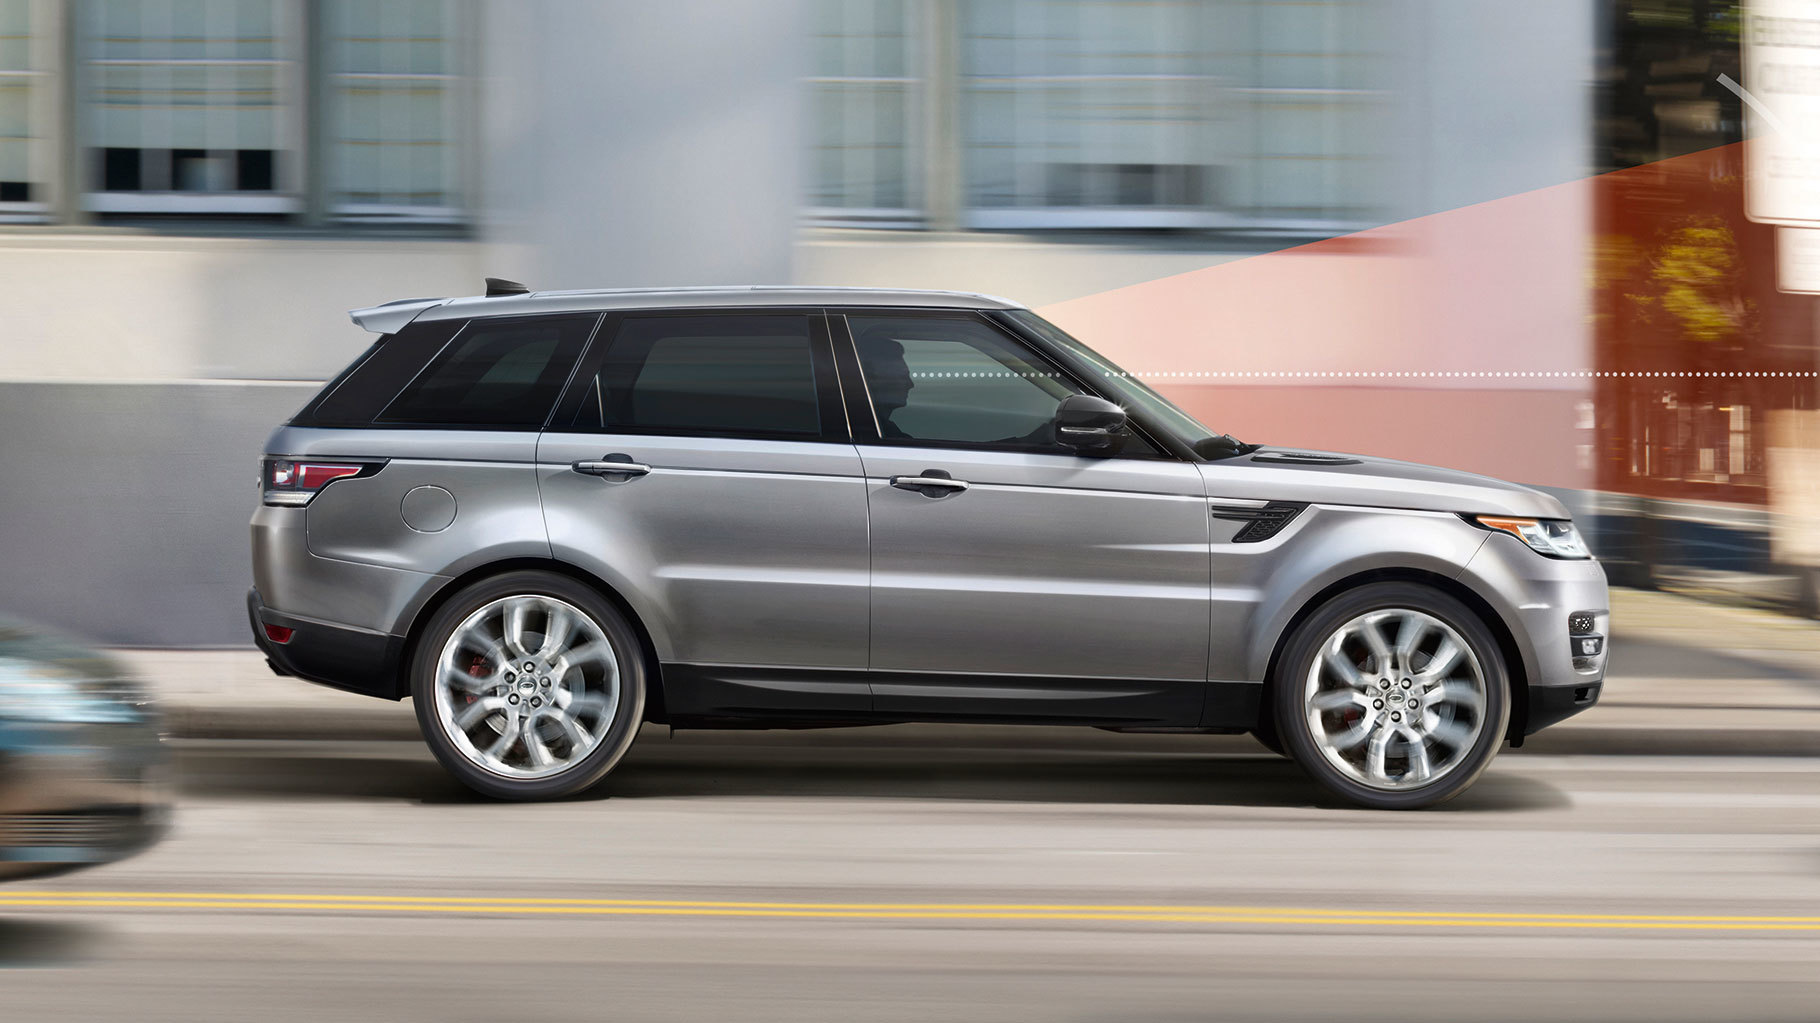 2017 land rover range rover sport wayne newtown square pa. Black Bedroom Furniture Sets. Home Design Ideas